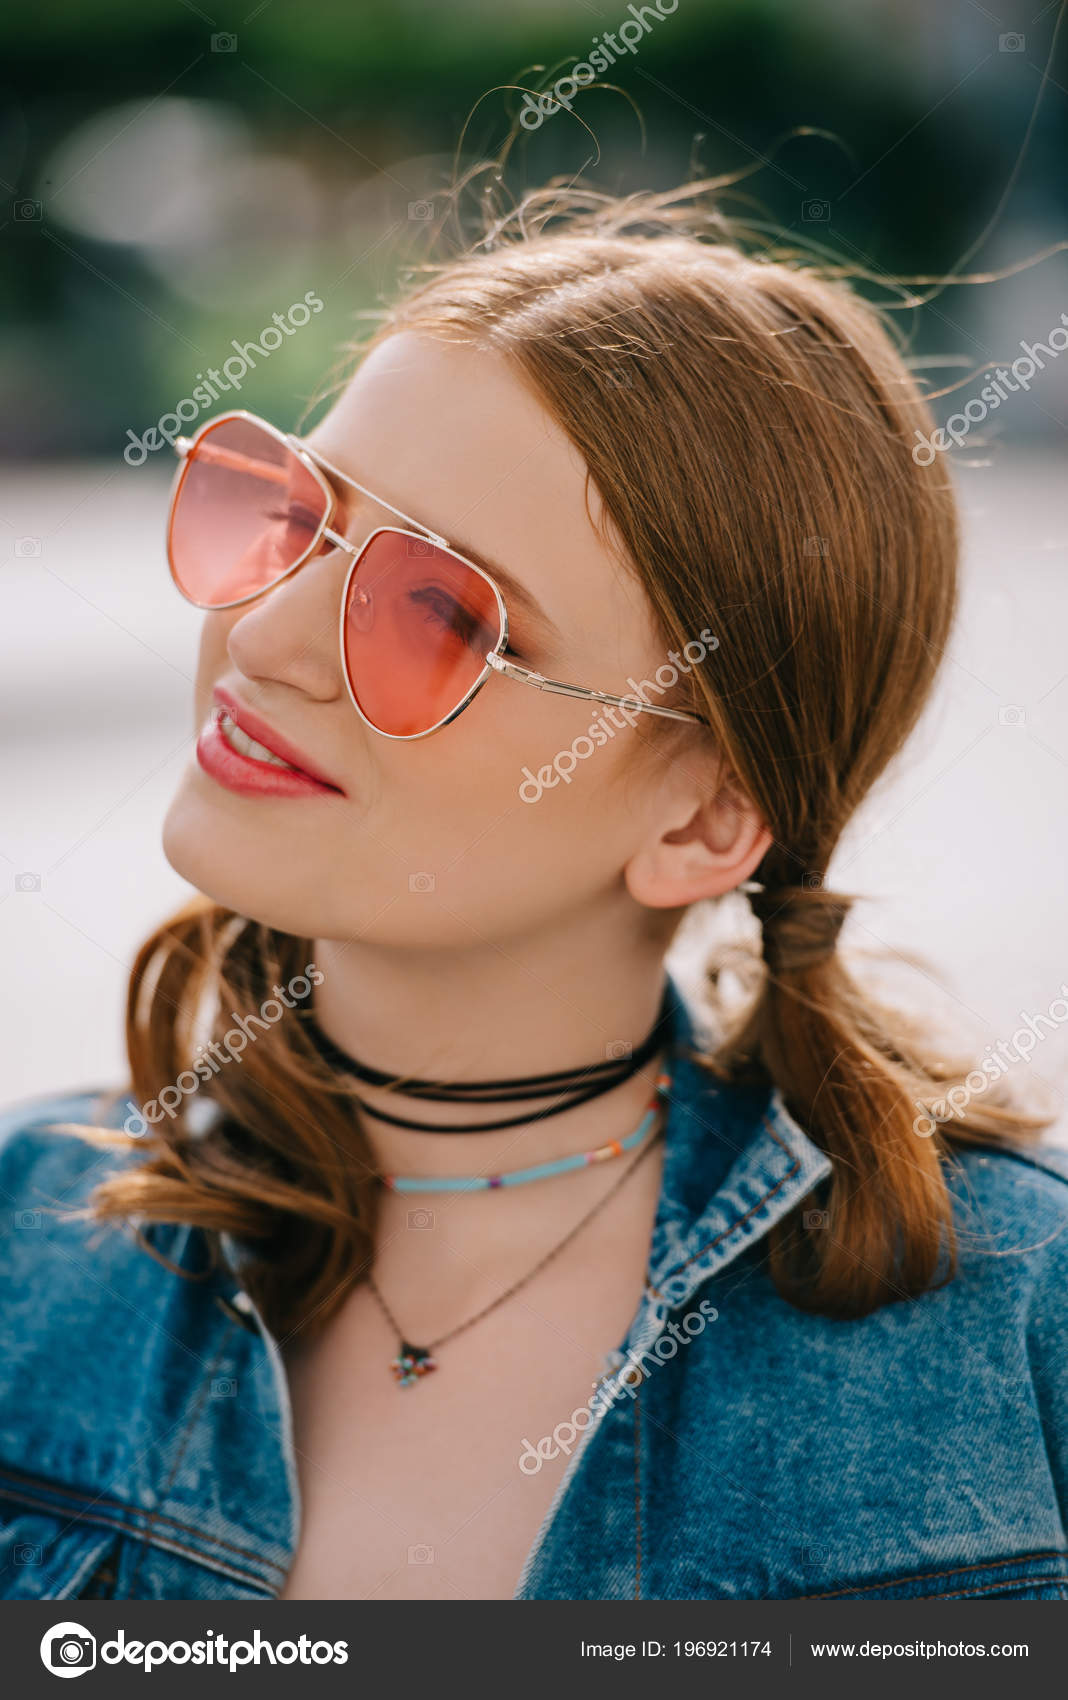 d846f943a0 Portrait Beautiful Smiling Girl Sunglasses Denim Jacket Looking Away  Outdoors — Stock Photo